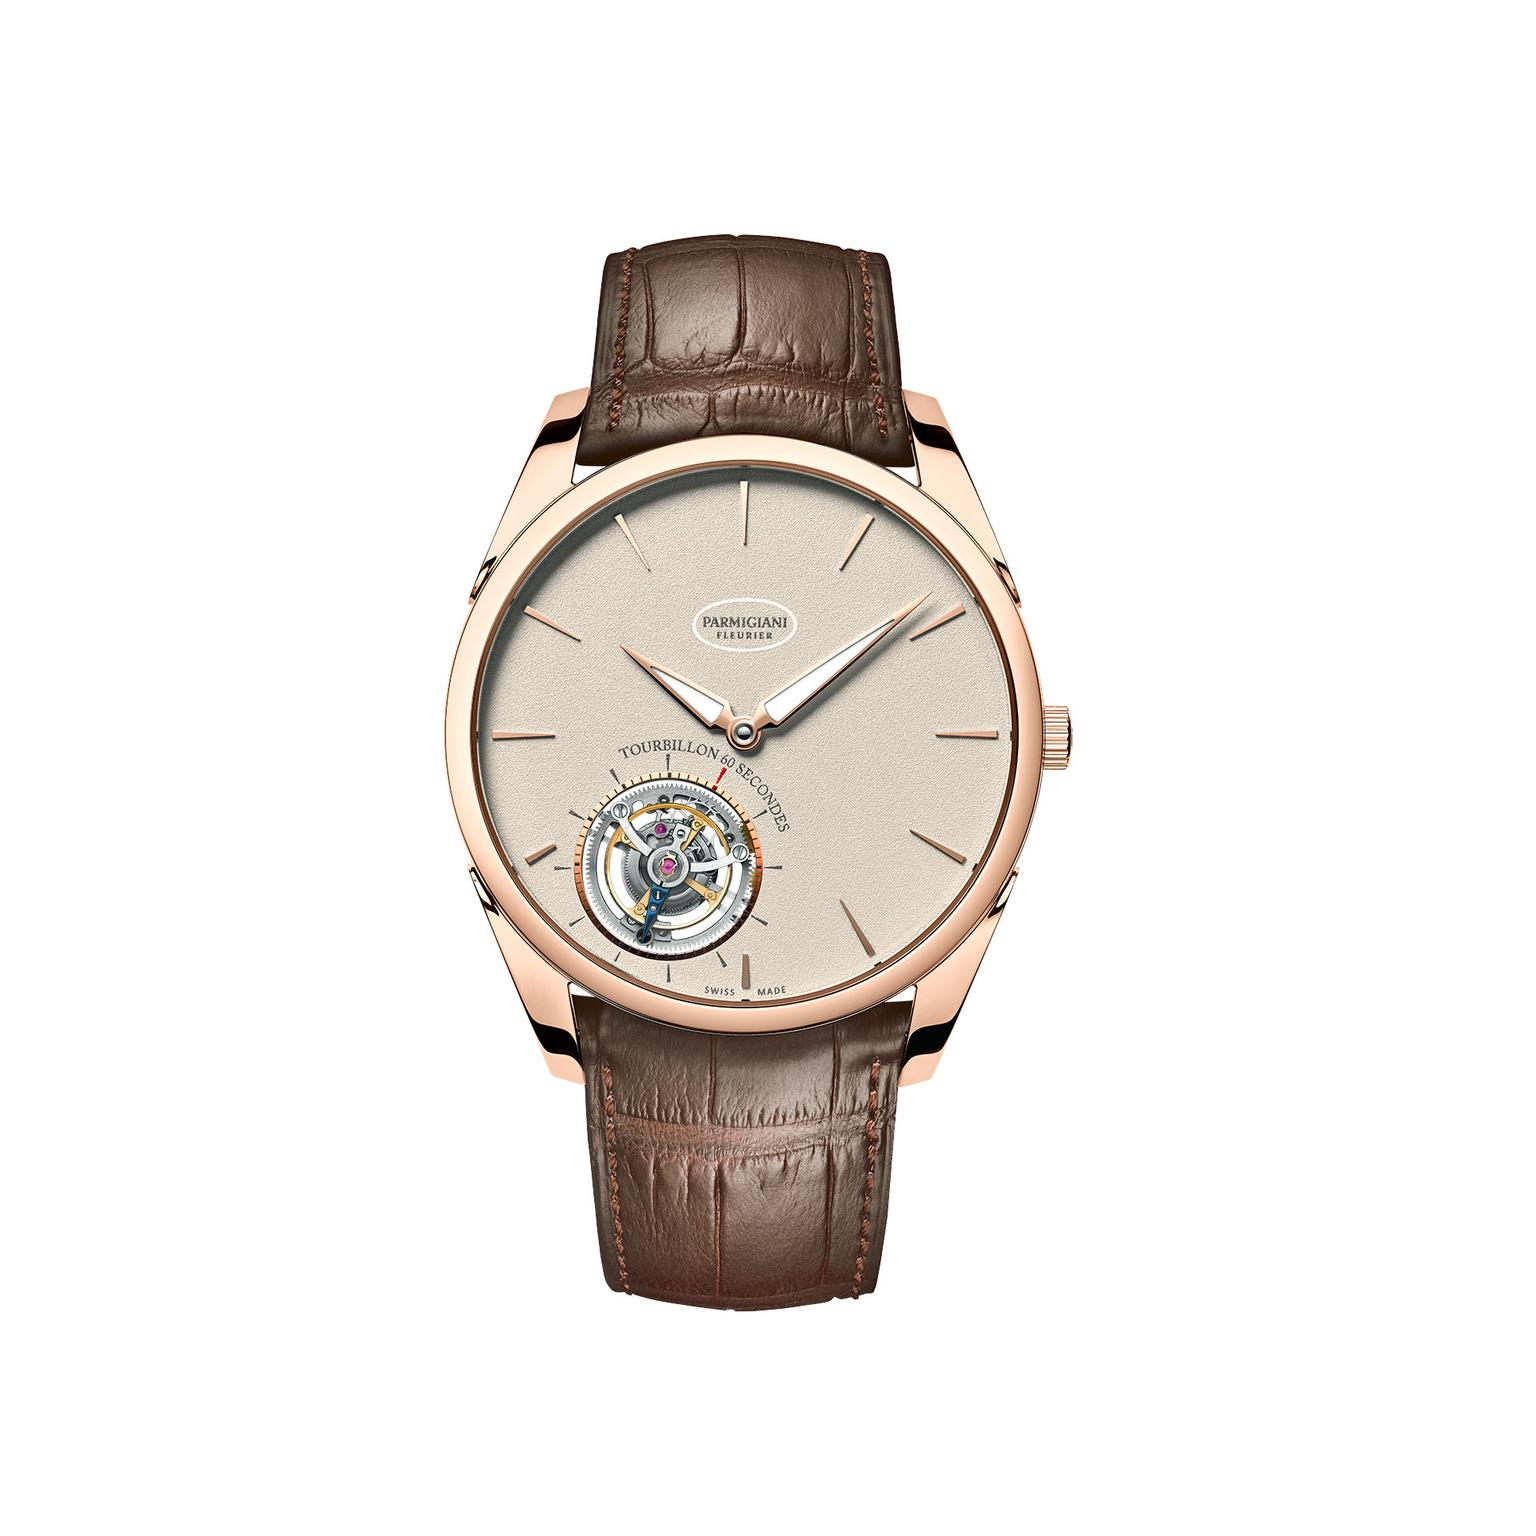 Parmigiani Tonda 1950 Tourbillon watch grained dial